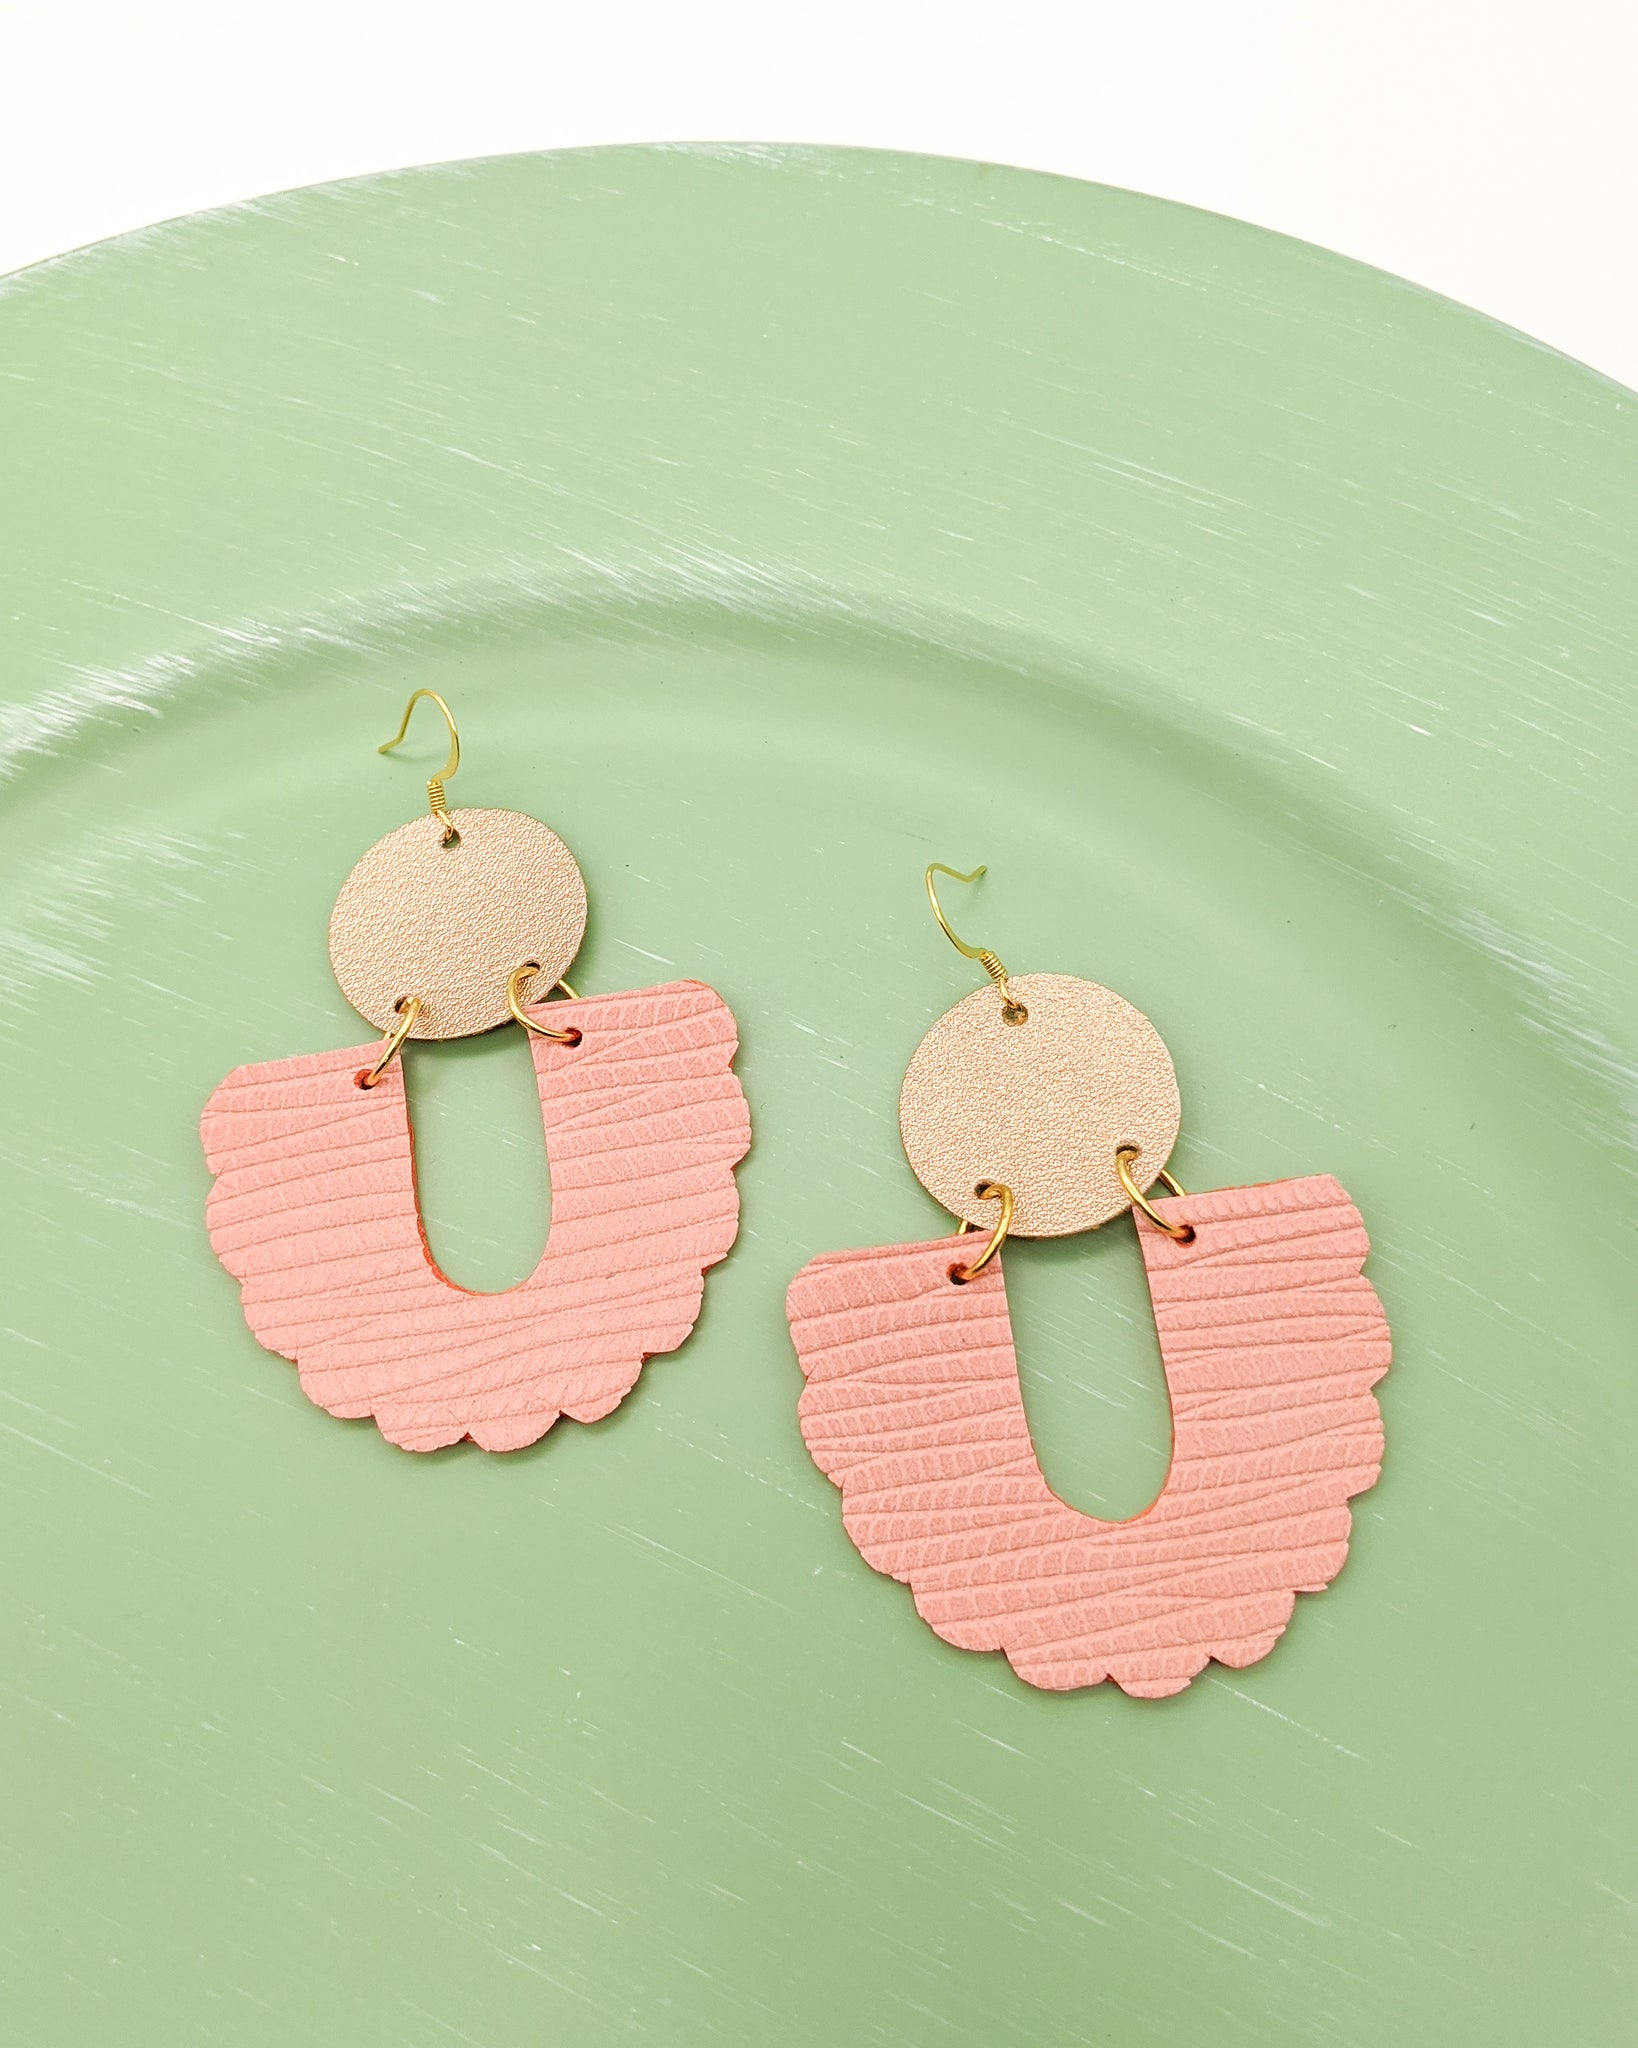 Sophie Earrings in Peachy Pink & Champagne